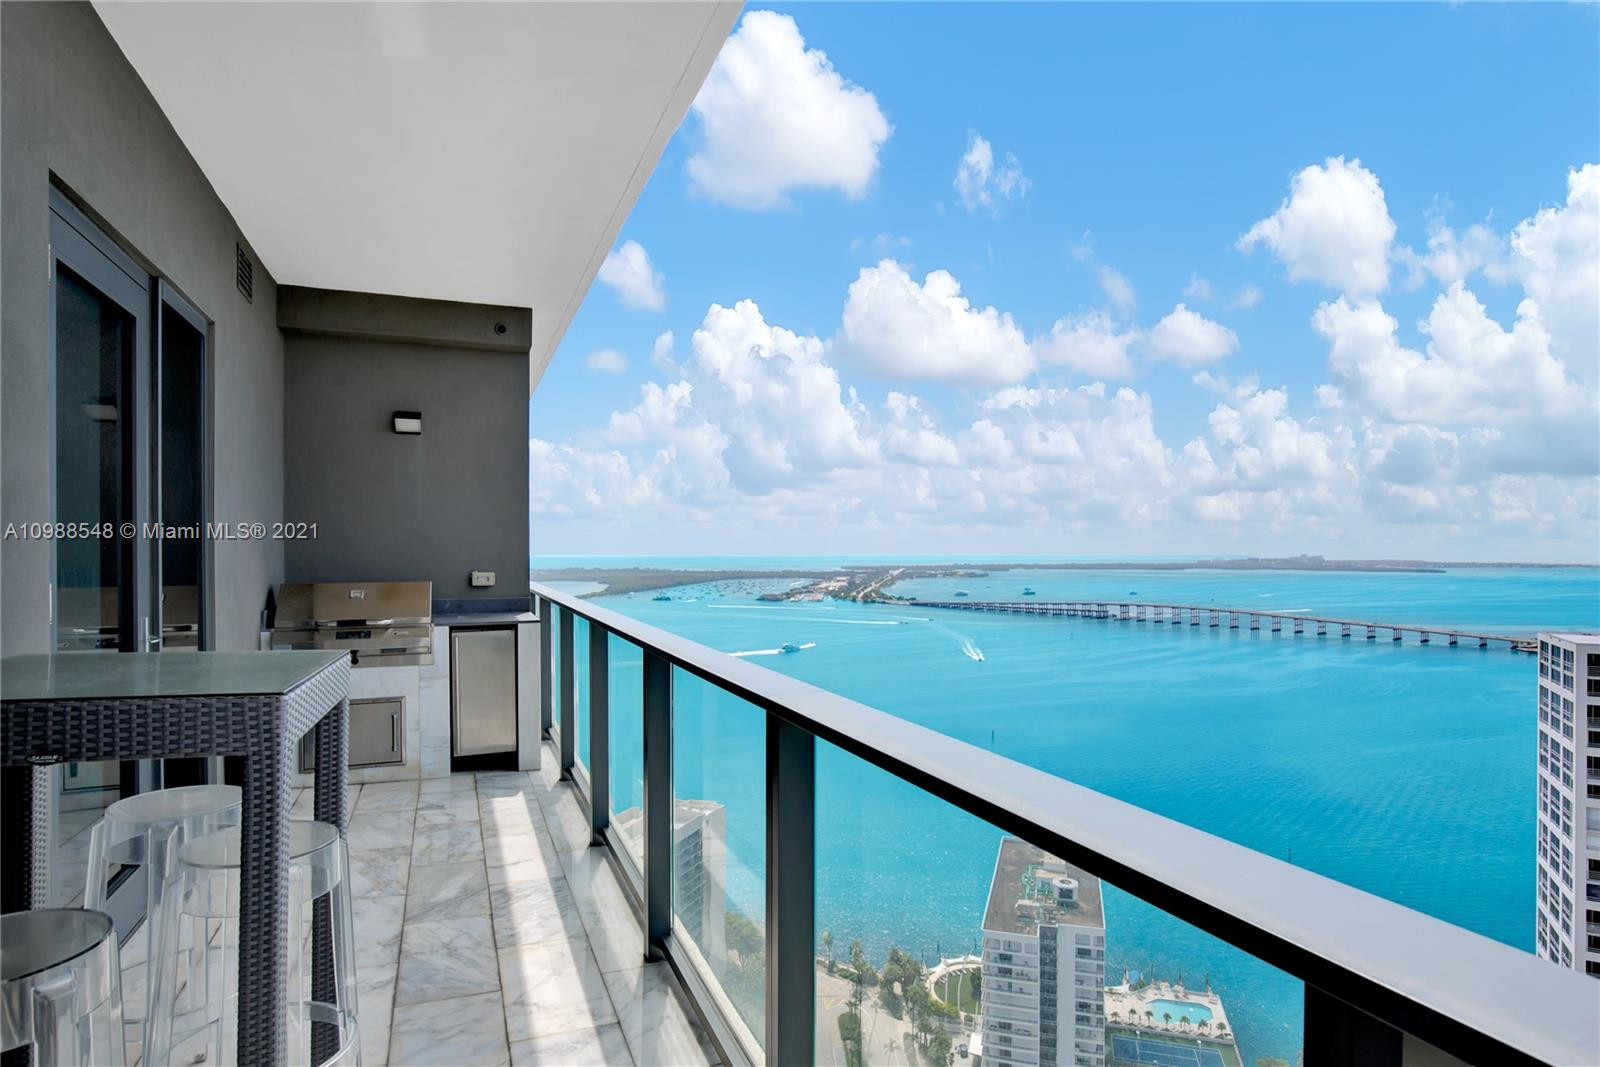 Manhattan meets Miami. 2 Units combined to one. Tastefully decorated with no expense spared. Watch the breathtaking sunrise over Miami Beach and the sunset over Brickell and Coral Gables. Views all the way to The Biltmore Hotel and the Marlin's stadium. Gaze at the city's lights at night.  Brand new in the heart of Brickell and the second largest unit in the building with over 3,300 sqft of living space. Luxury finishes throughout including 11 ft floor to ceiling impact windows, porcelain flooring, subzero/wolf appliances, Italian cabinetry, and quartz countertops. Captivating unobstructed water views from the outdoor BBQ terrace and magnificent city views throughout the rest of the unit. Complimentary pet walking included! A Beautiful Miami home!